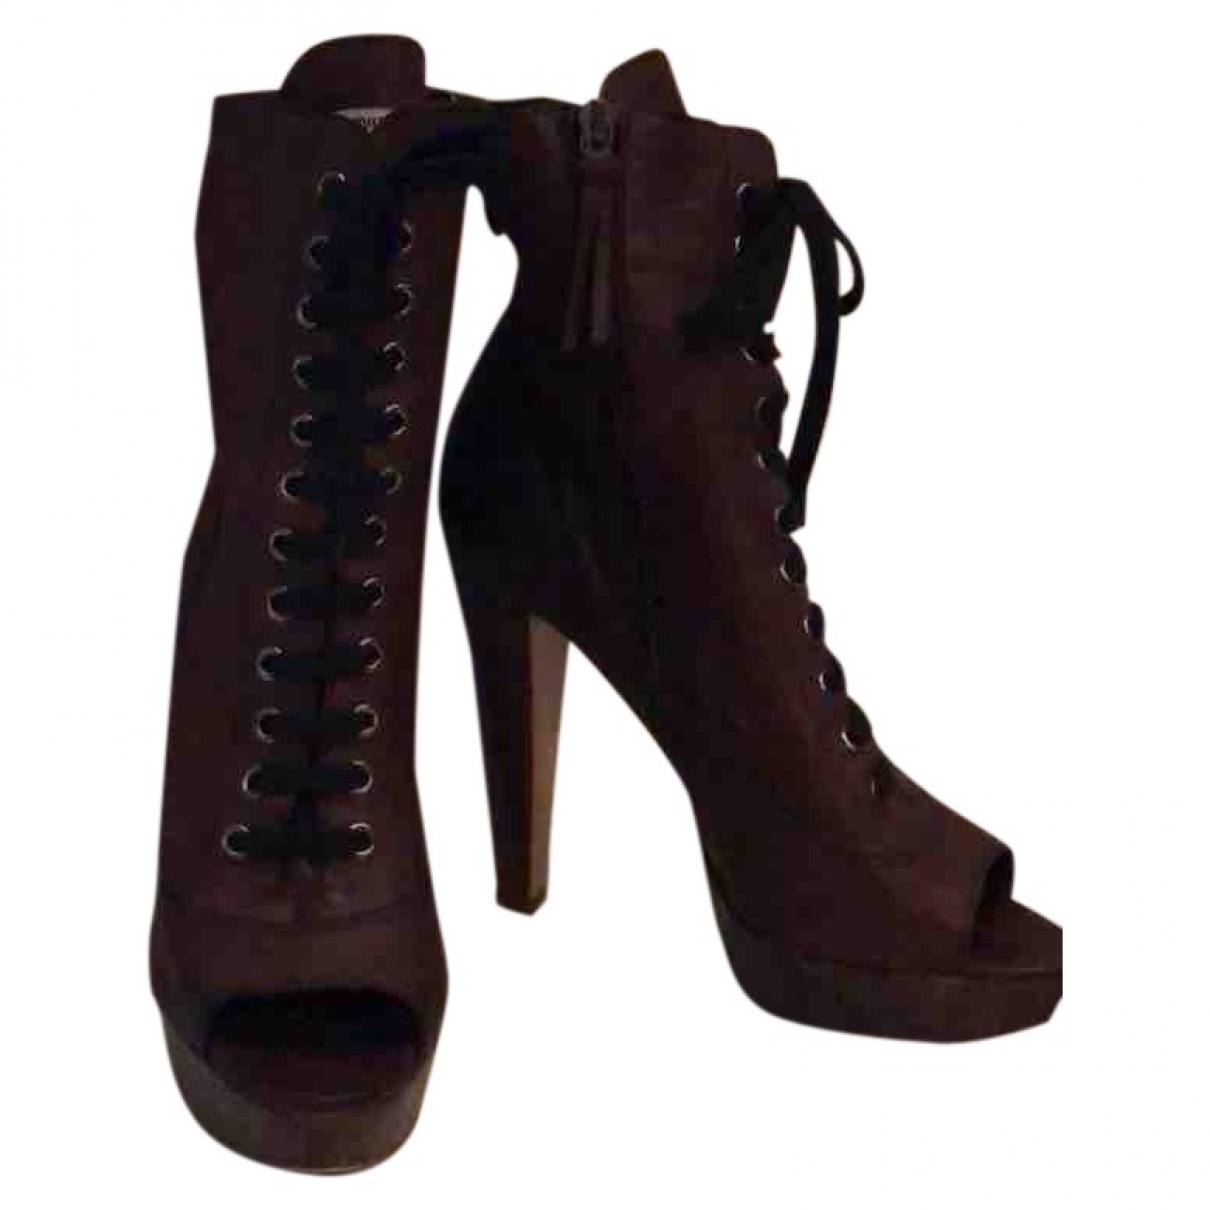 Miu Miu \N Brown Leather Ankle boots for Women 37 EU